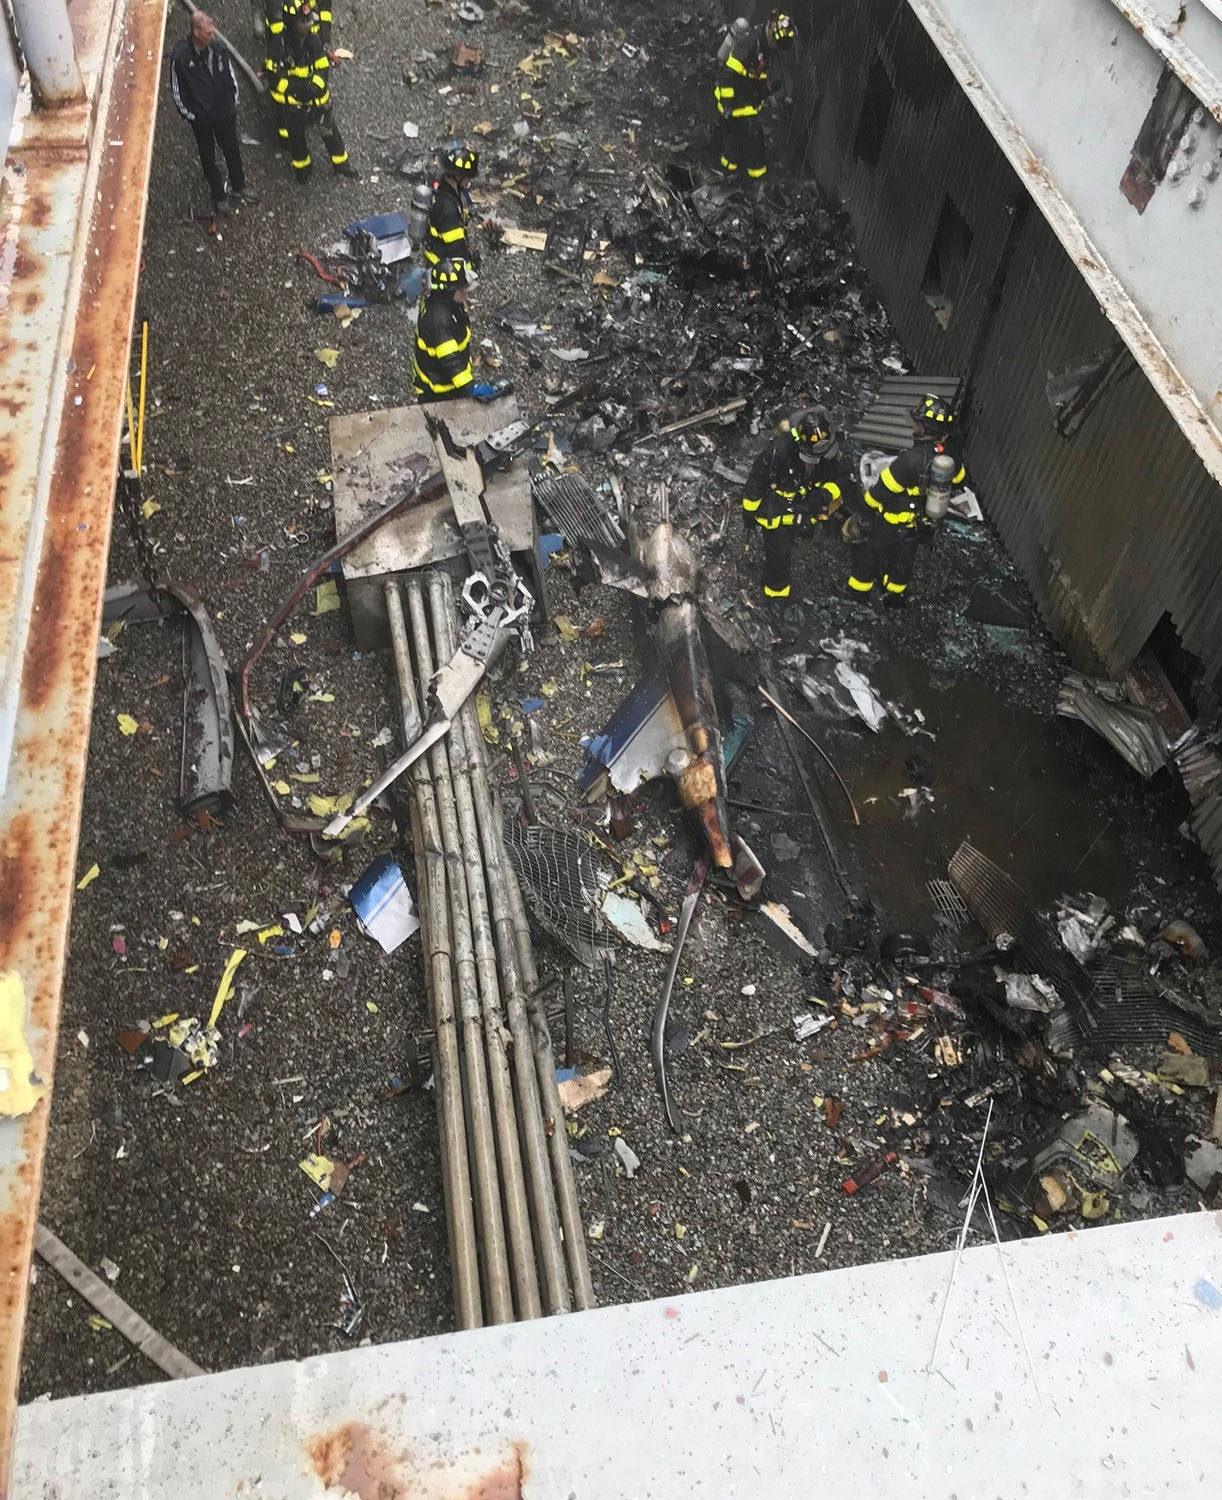 FDNY on the scene of a helicopter crash